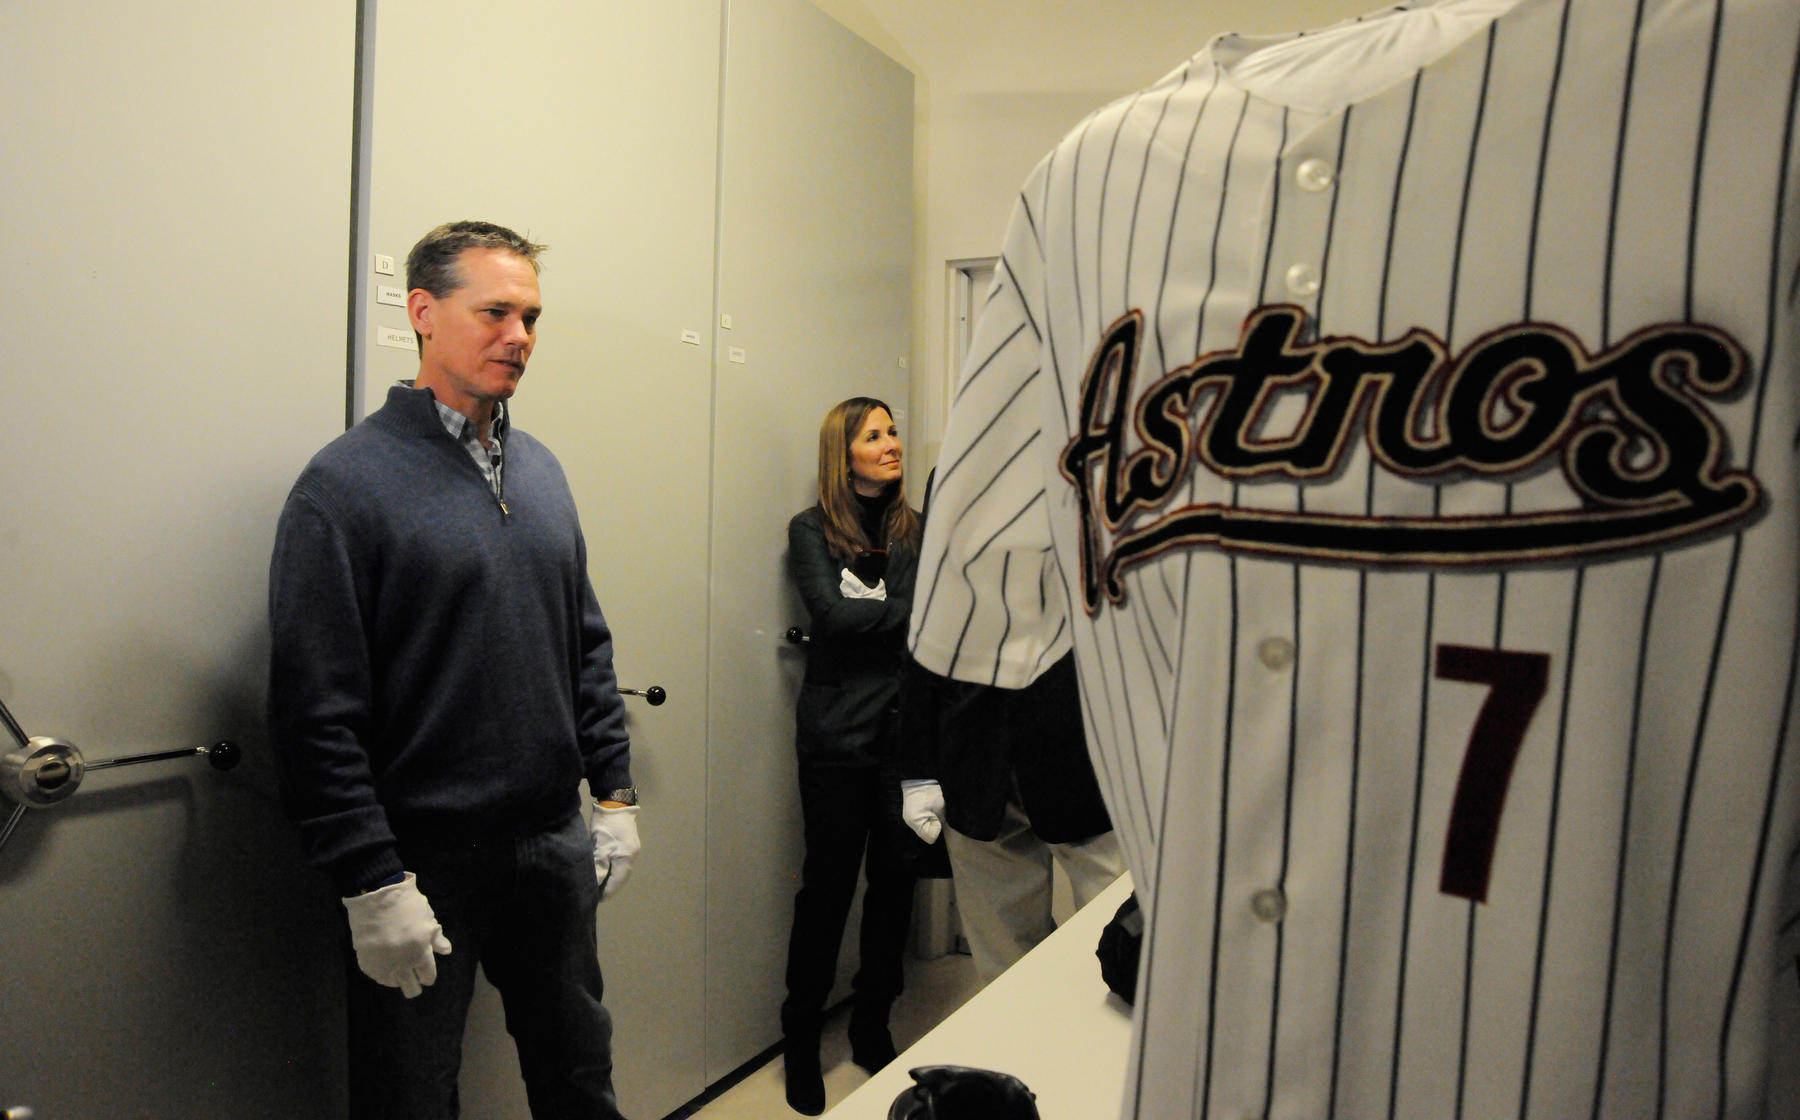 Craig Biggio and his wife Patty check out some of his artifacts in the Hall of Fame collection, including an Astros jersey he wore on Opening Day 2003 with a patch (not seen) honoring the Space Shuttle Columbia astronauts who died on Feb. 2, 2003. (Milo Stewart Jr. / National Baseball Hall of Fame)